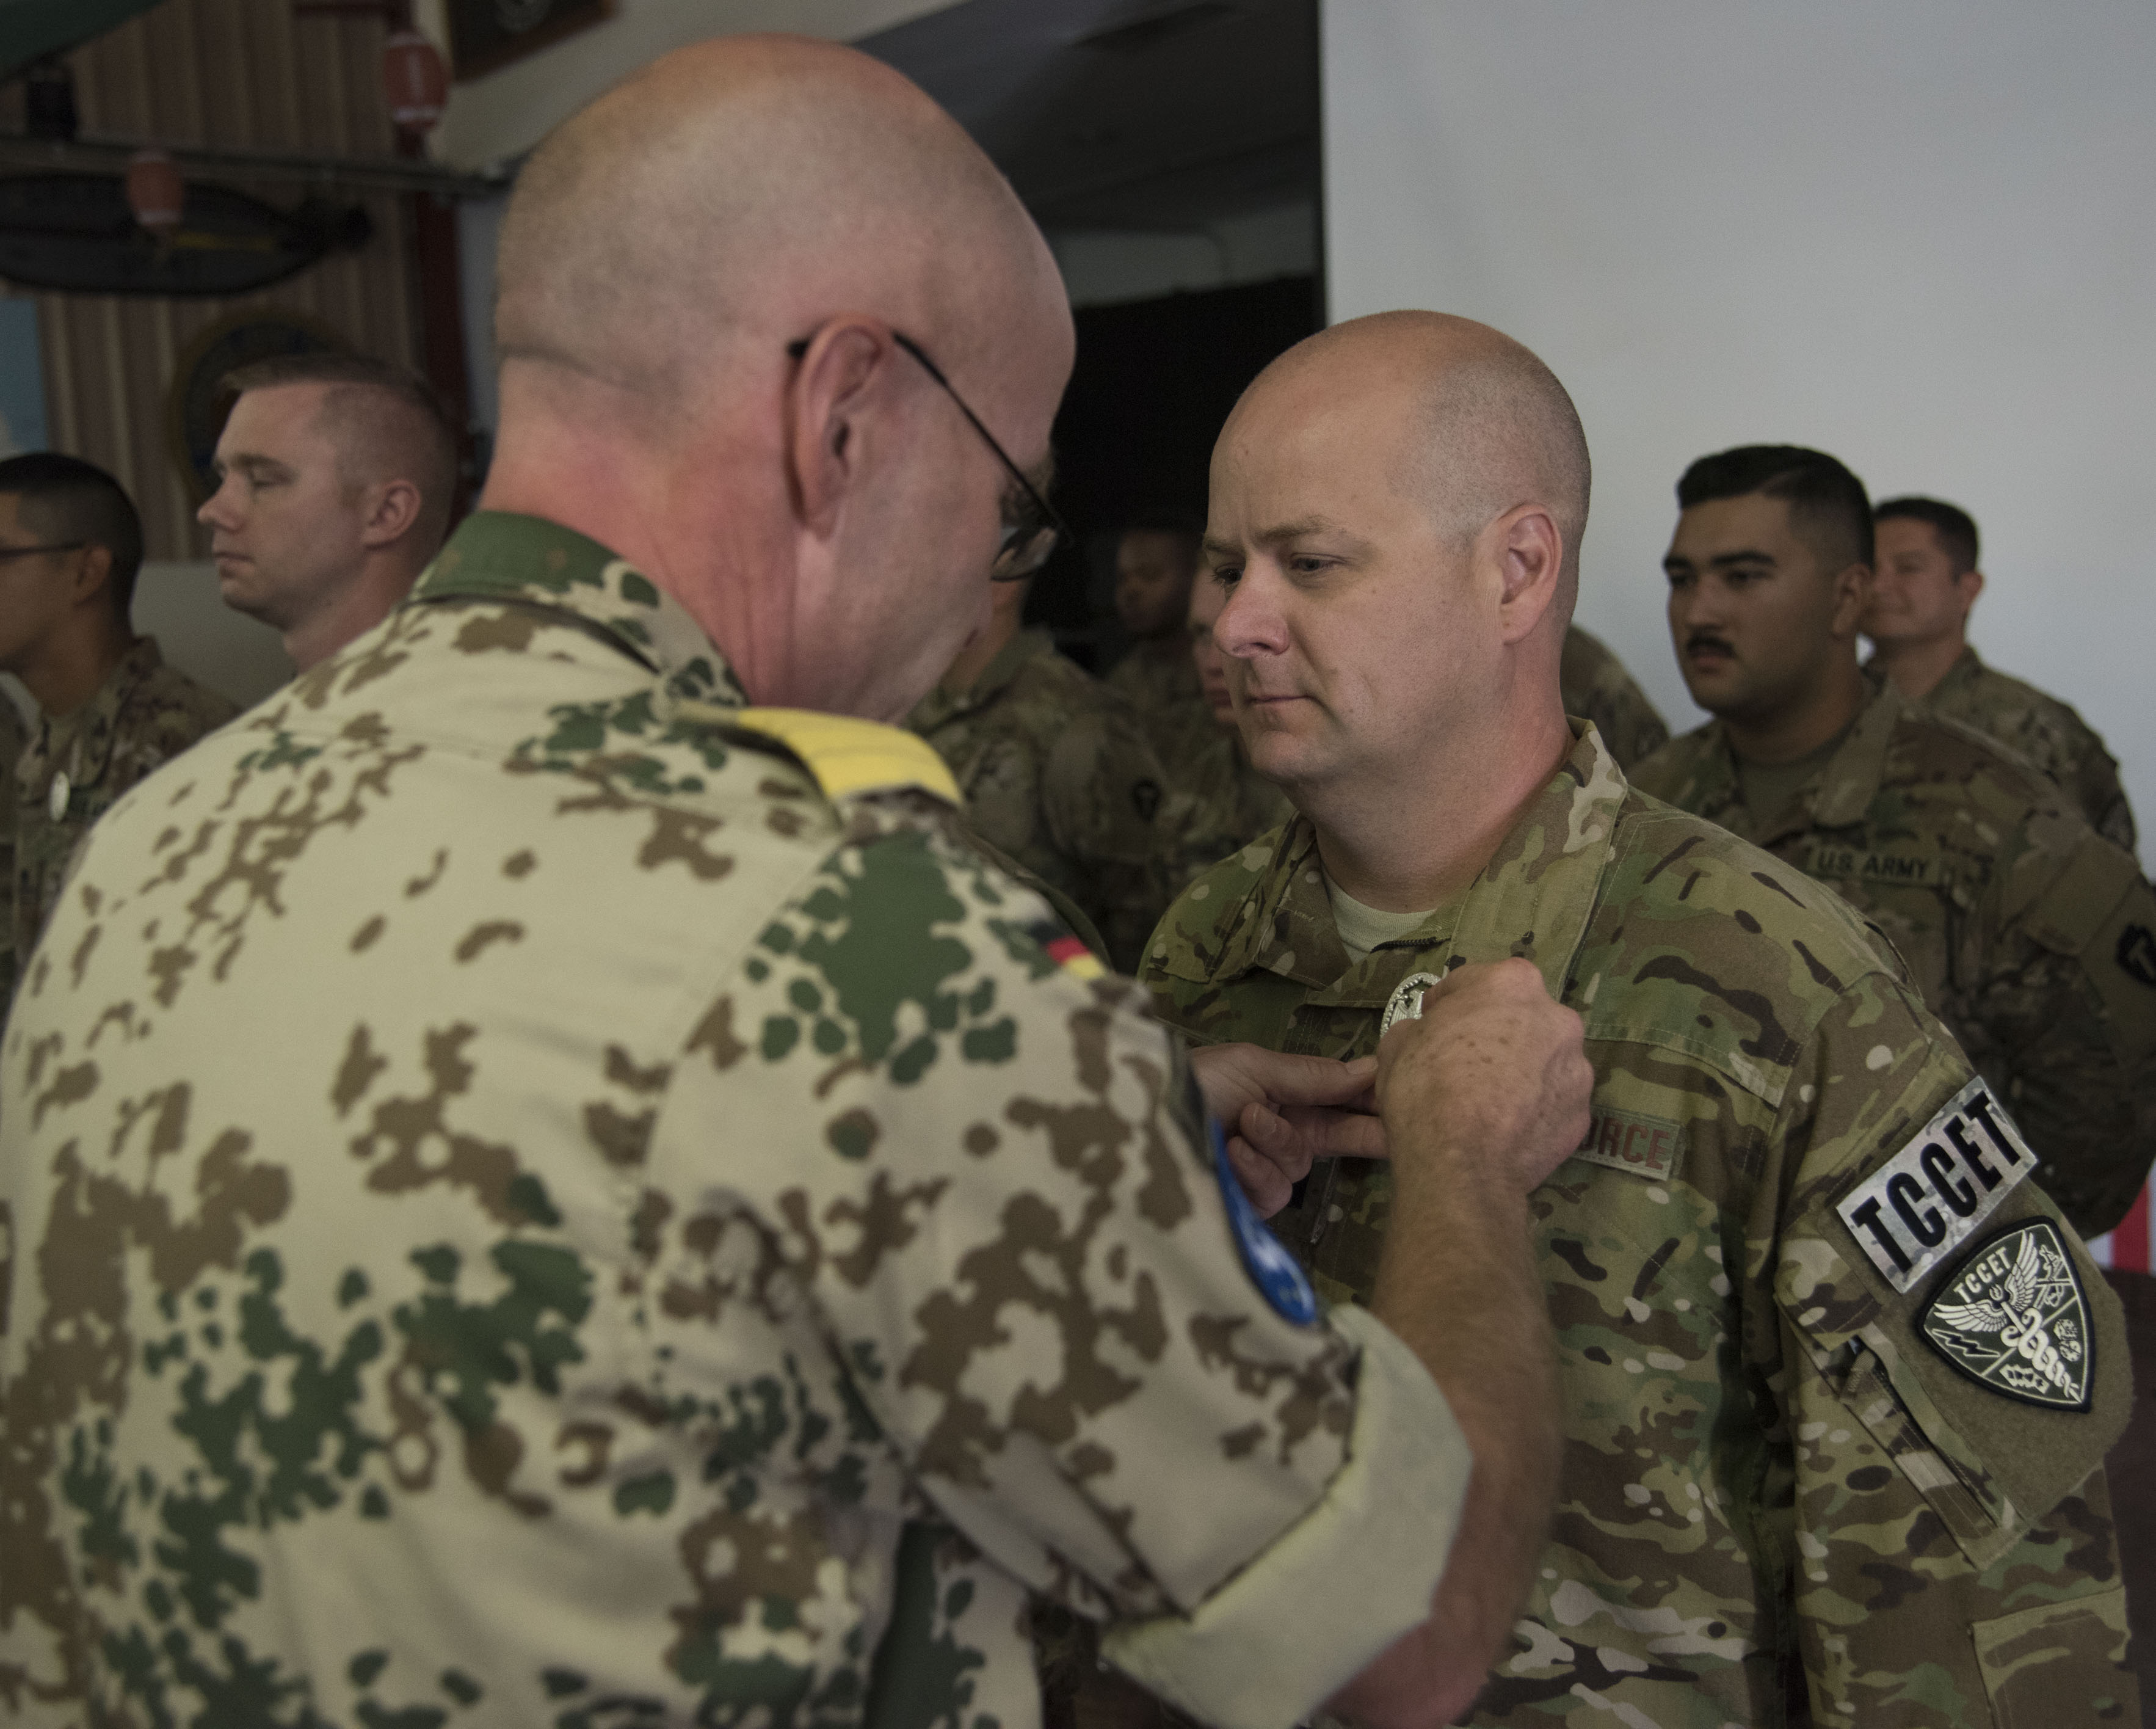 A U.S. Air Force Airman assigned to Combined Joint Task Force-Horn of Africa receives the German Armed Forces Proficiency Badge (GAFPB), a decoration of the Armed Forces of the Federal Republic of Germany, by German commander Axel Schilling at Camp Lemonnier, Djibouti, Dec. 8, 2017. Competitors completed a physical fitness test, uniformed swim, weapons qualification, ruck march, first aid course and chemical warfare course to be awarded the GAFPB, one of the few foreign allied military awards that U.S. service members are authorized to wear. (U.S. Air National Guard photo by Staff Sgt. Allyson L. Manners)